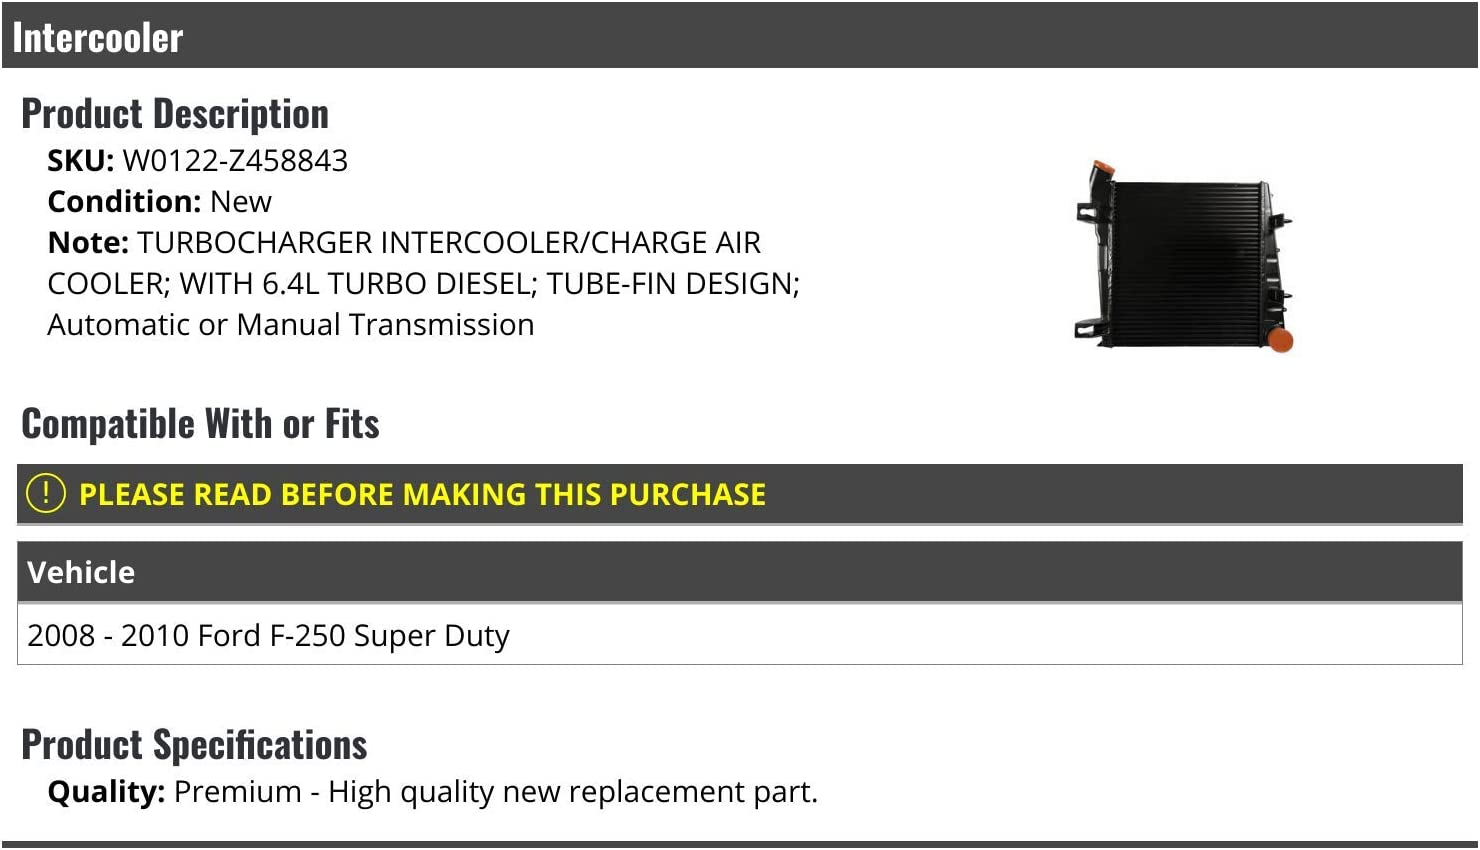 Turbo Intercooler Air Cooler Tube-Fin Design Compatible with 2008-2010 Ford F250 Super Duty 6.4L Turbo Diesel